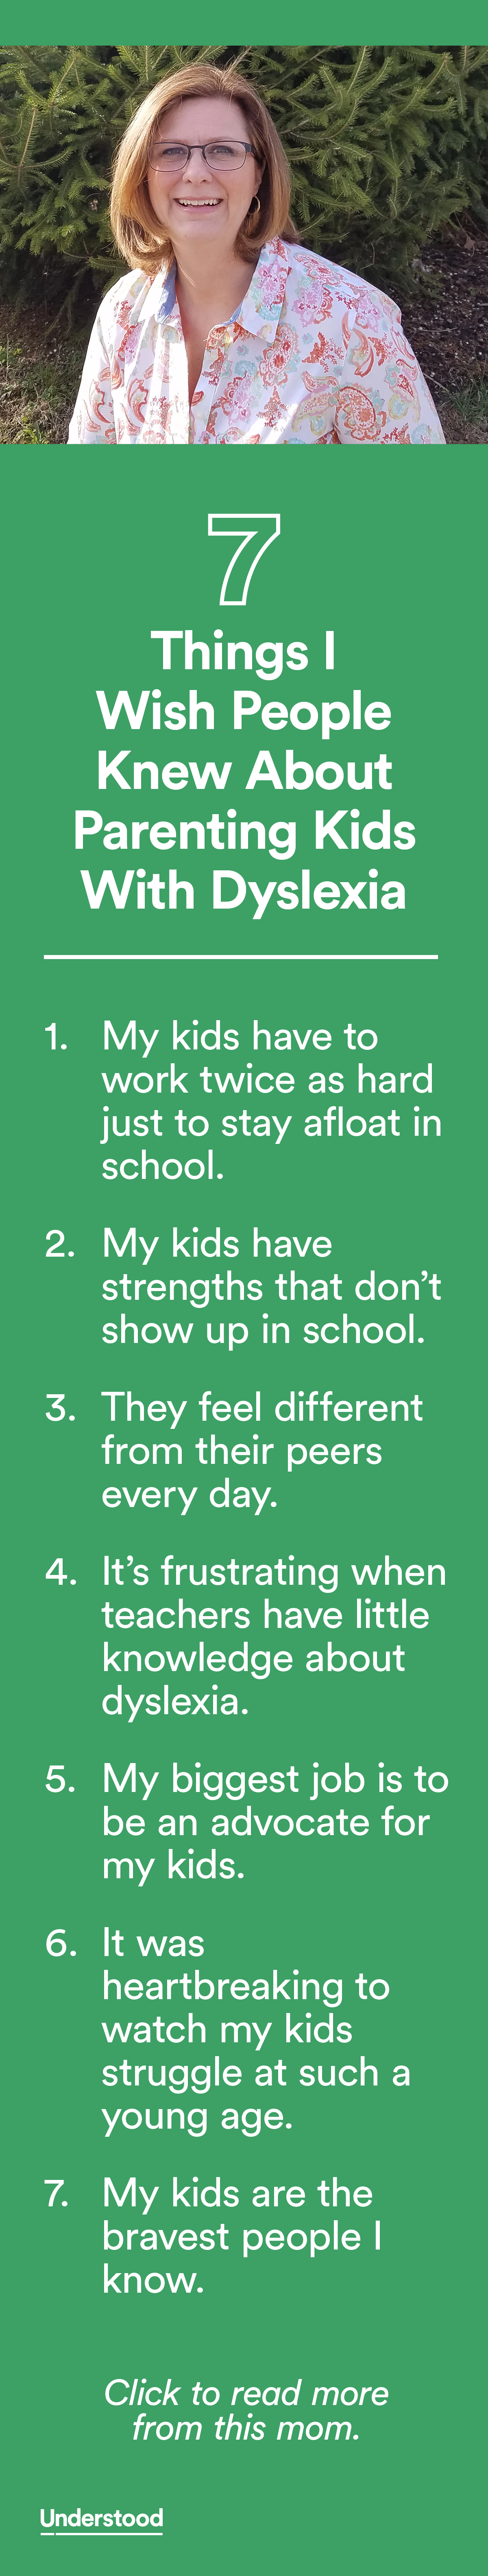 Teachers Misunderstand Dyslexia >> 7 Things I Wish People Knew About Parenting Kids With Dyslexia